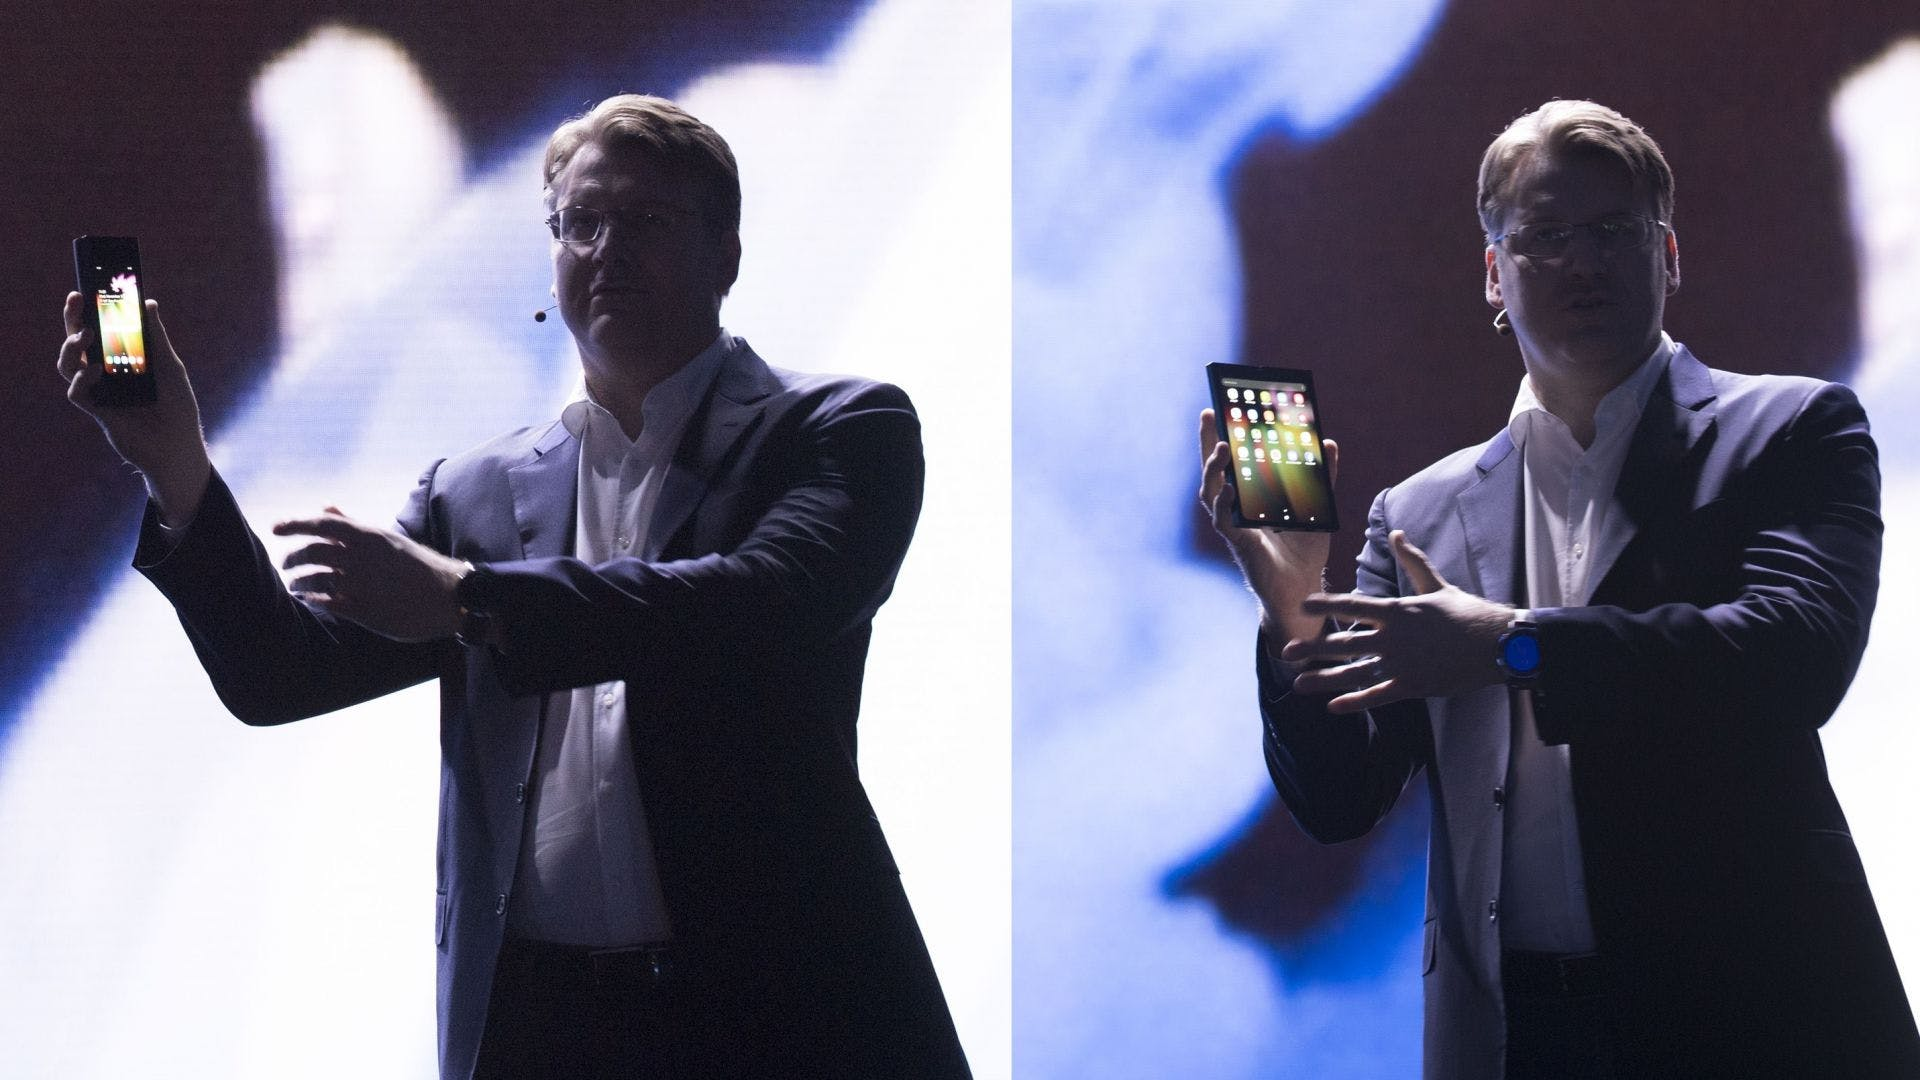 Justin Denison, SVP of Mobile Product Marketing showcases Samsung's foldable smartphone. SDC 2018.